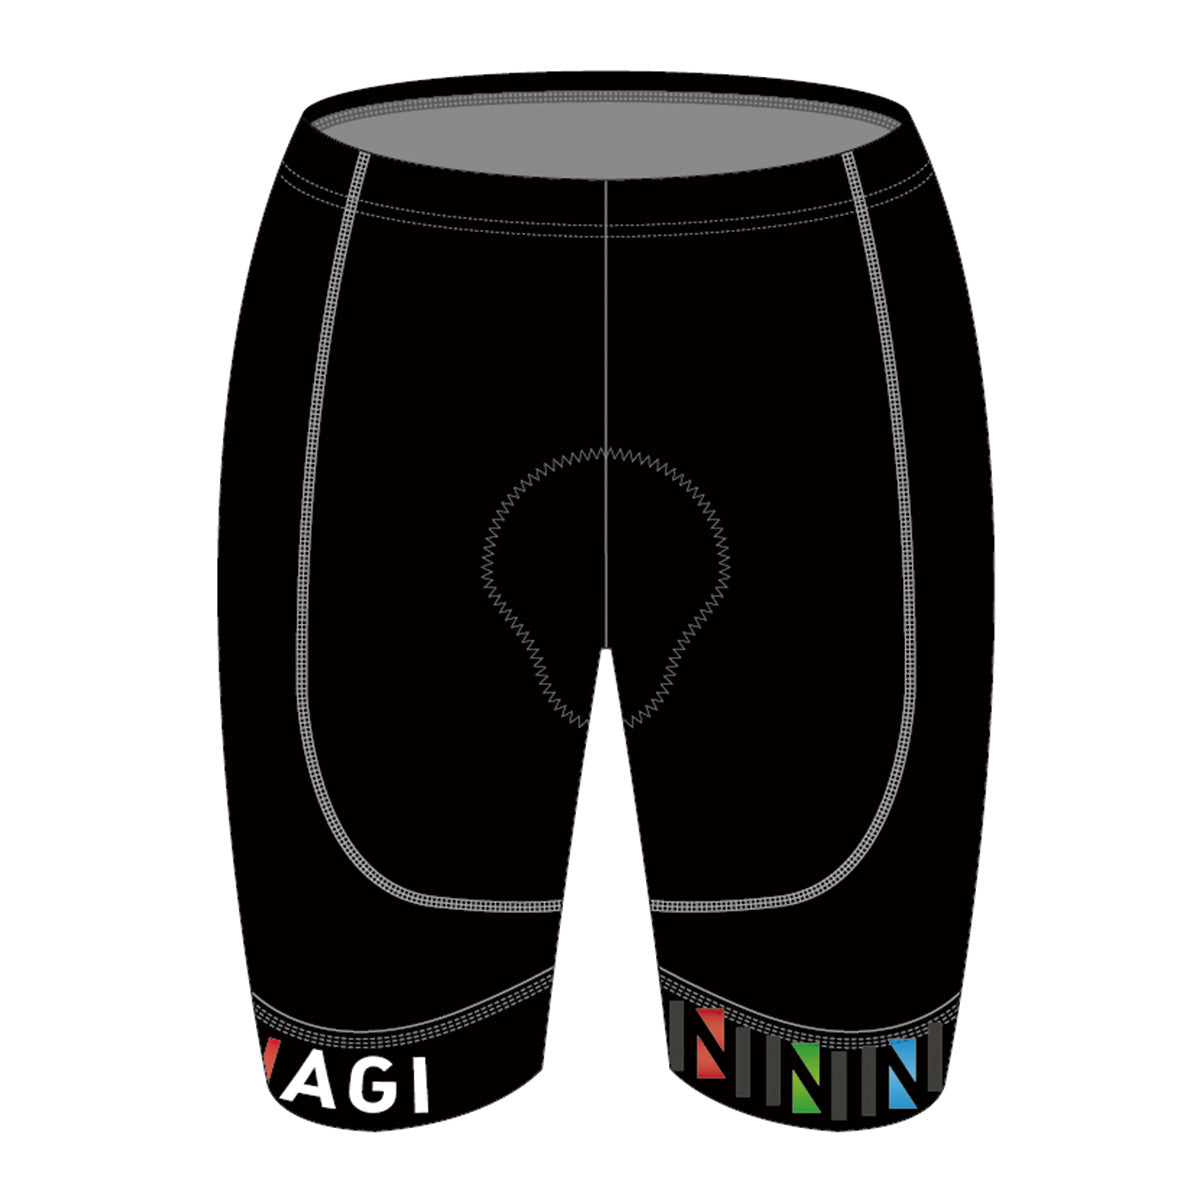 Team Nagi BLACK GOLD Cycling Shorts